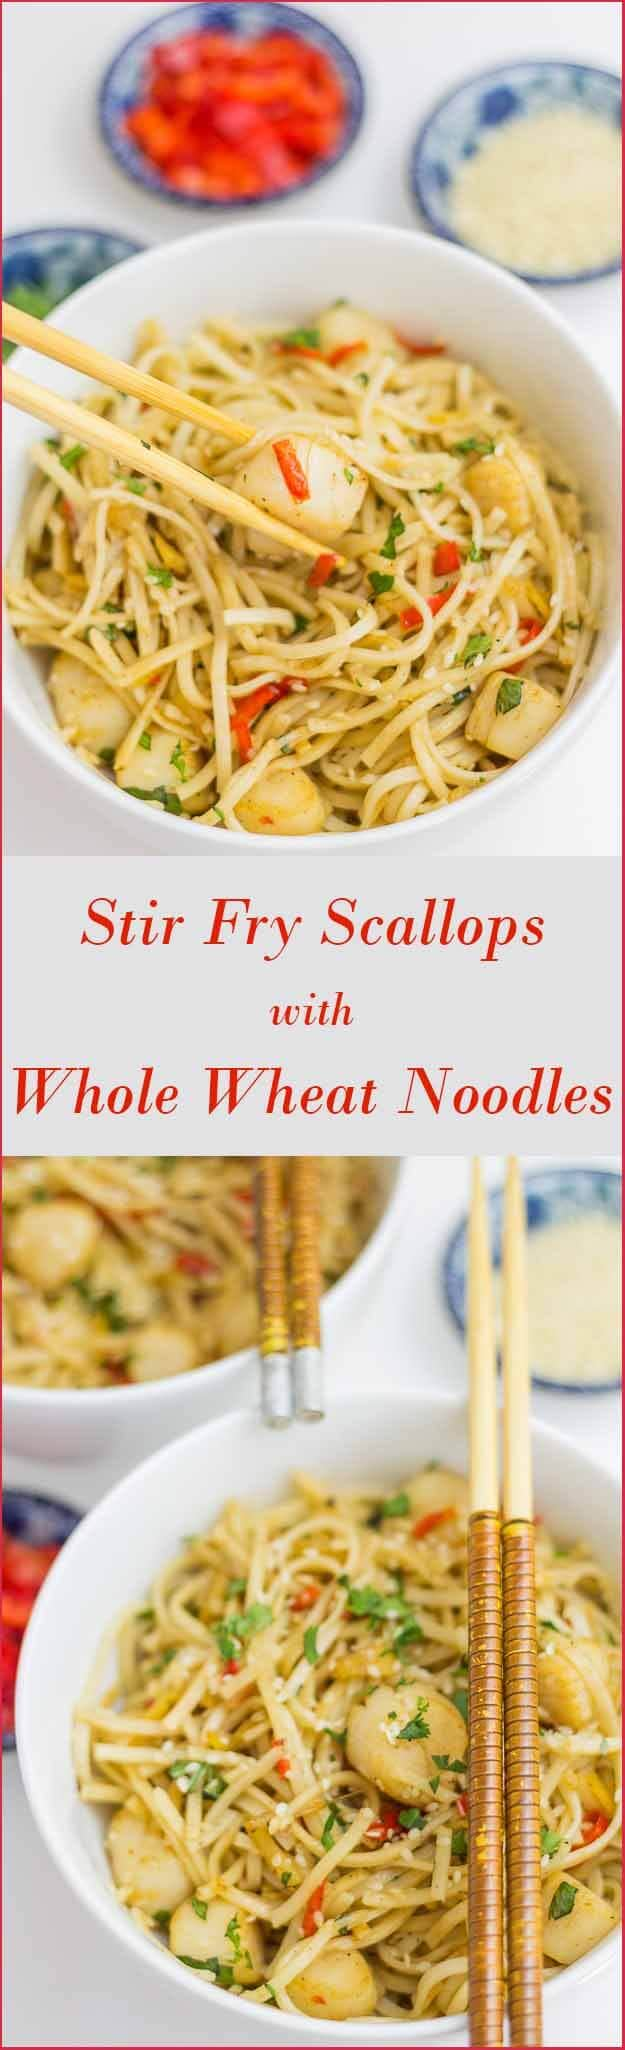 Quick and low cost healthy stir fried scallops recipe. Made with whole wheat noodles. This tasty recipe can be on the table in less than 30 minutes.